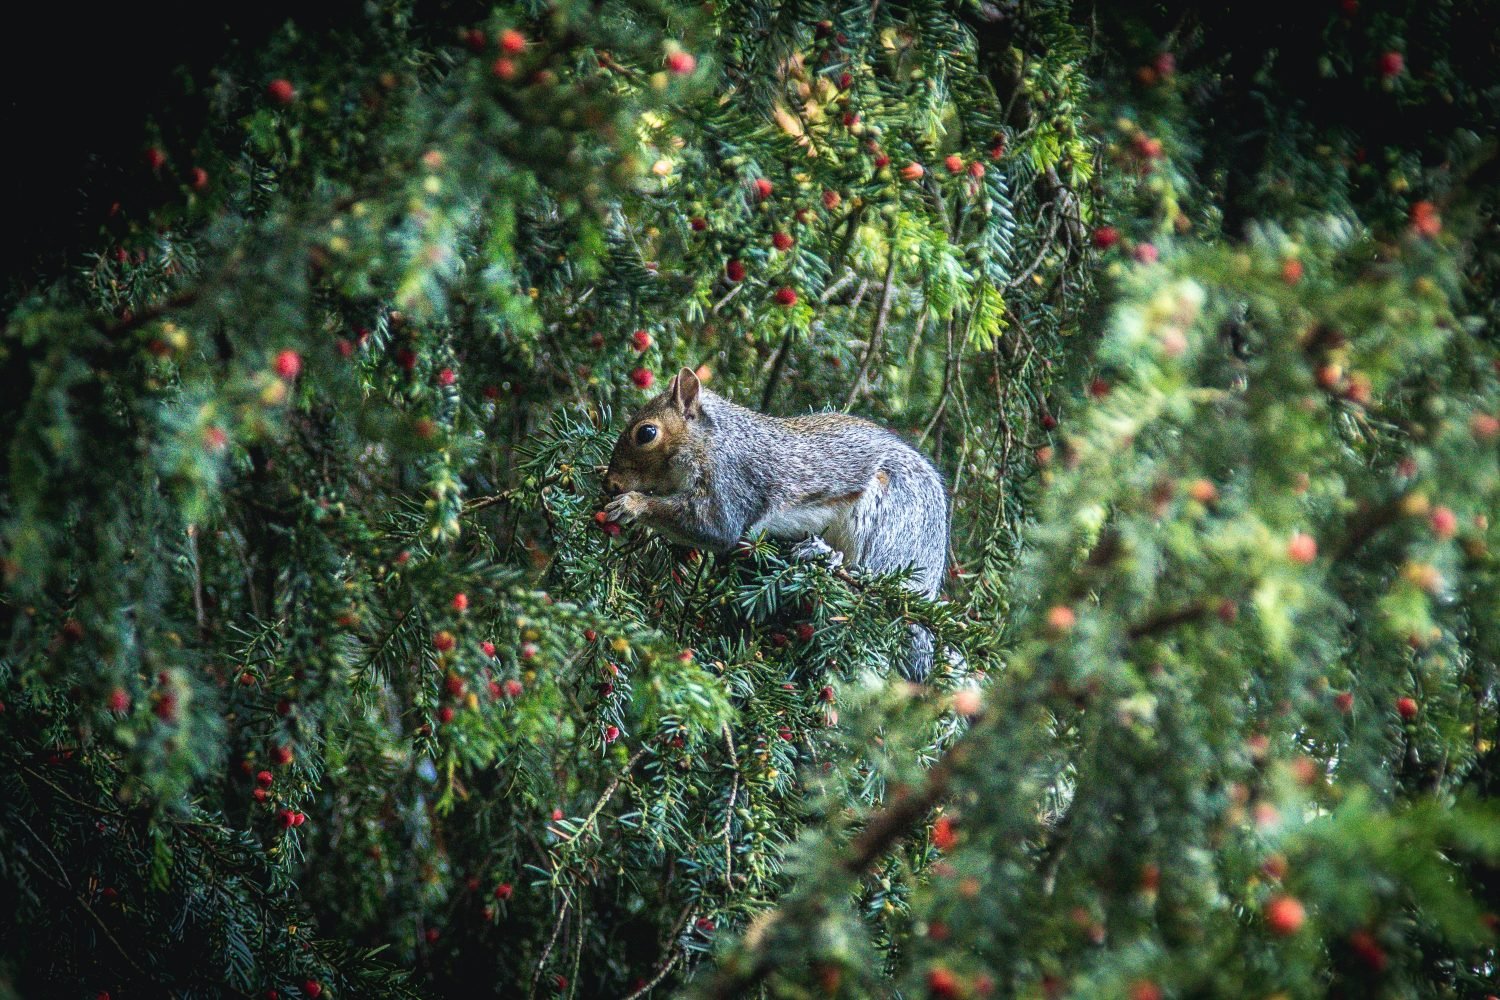 Yew Hedge & Squirrel